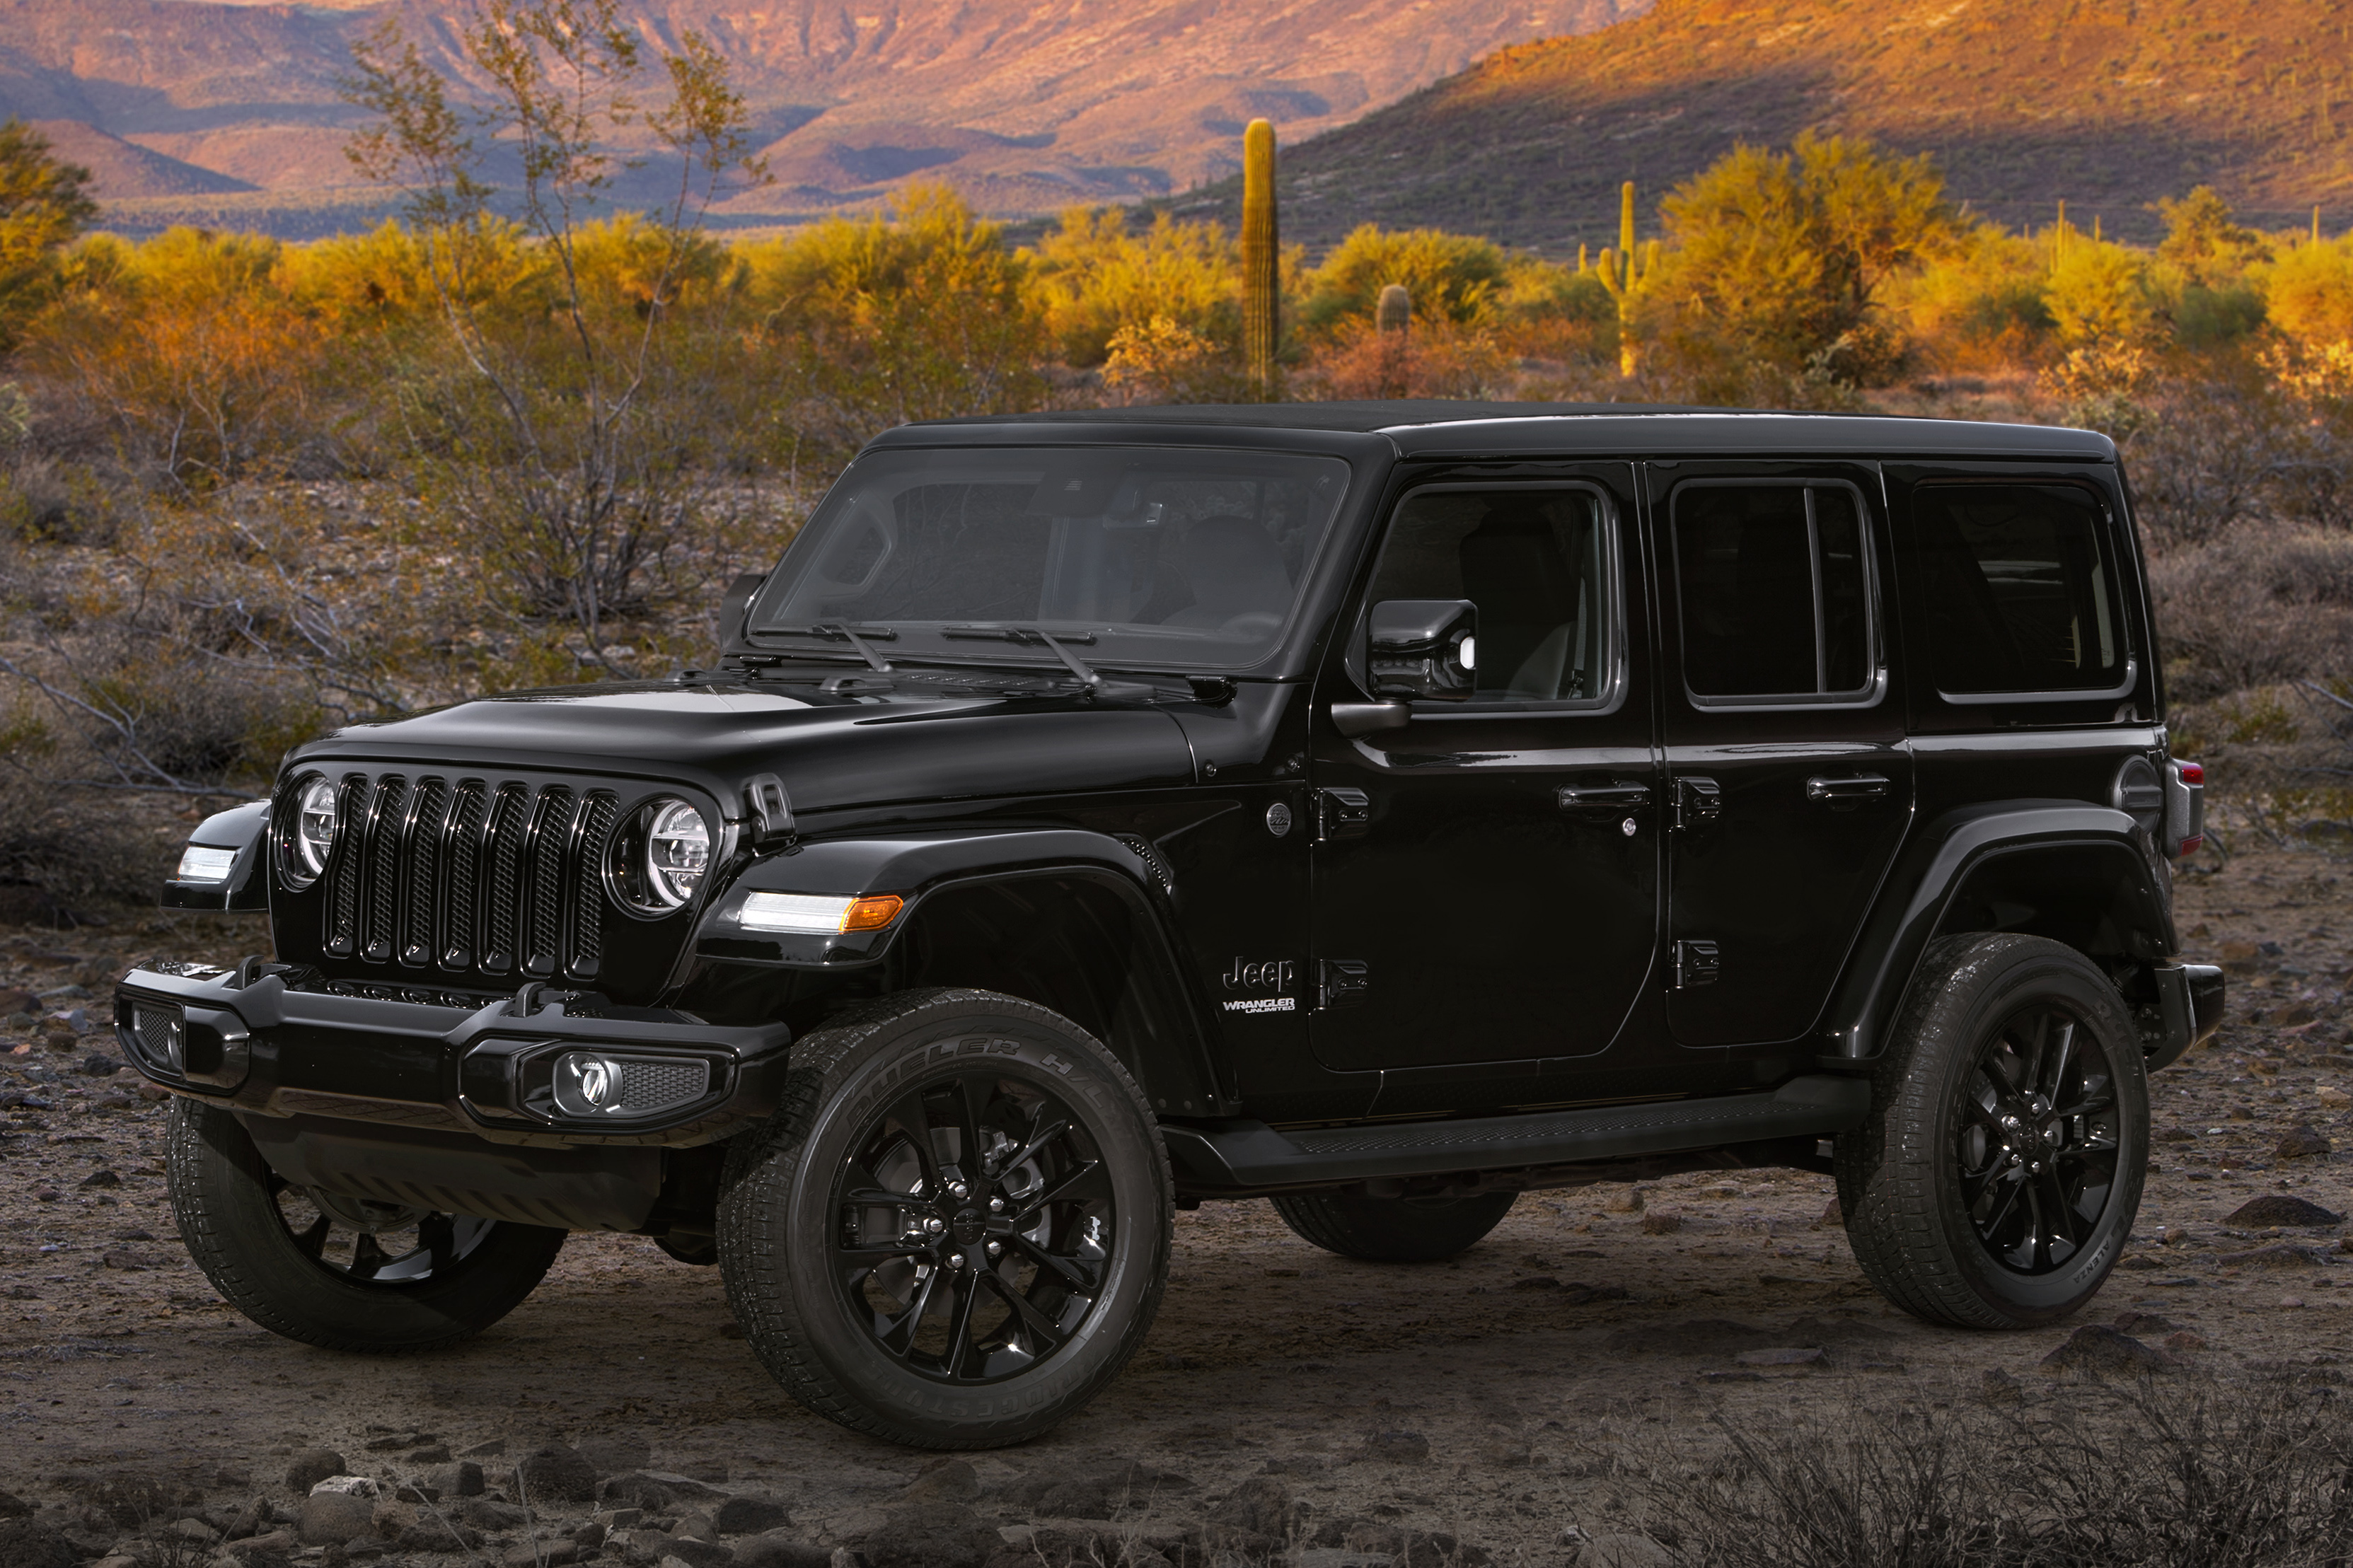 2020 Jeep Wrangler, Gladiator High Altitude: From Off-Road to On-Fleek